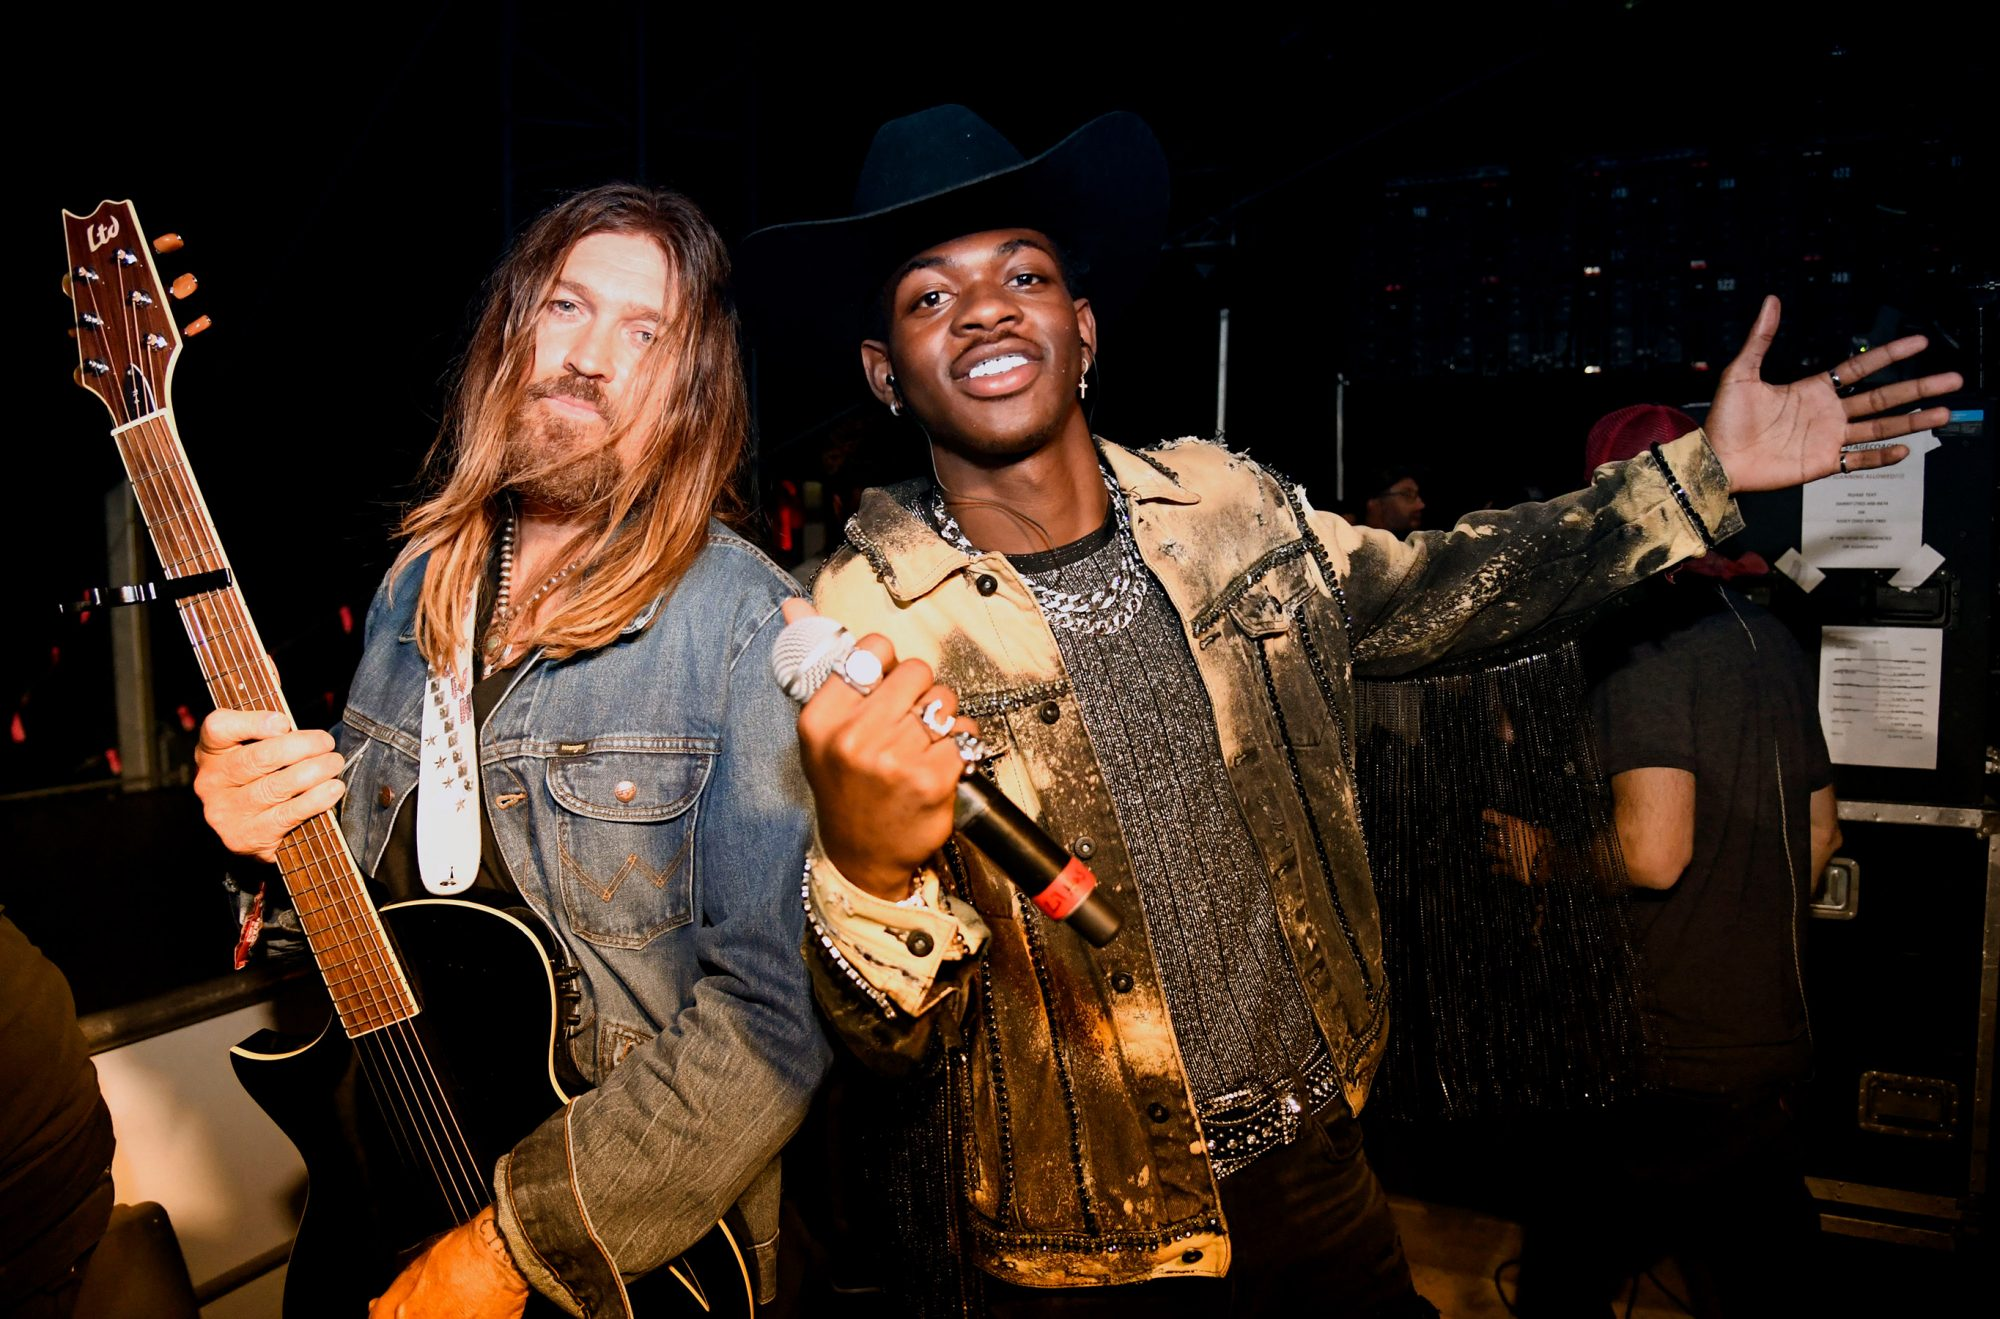 Billy Ray Cyrus (L) and Lil Nas X